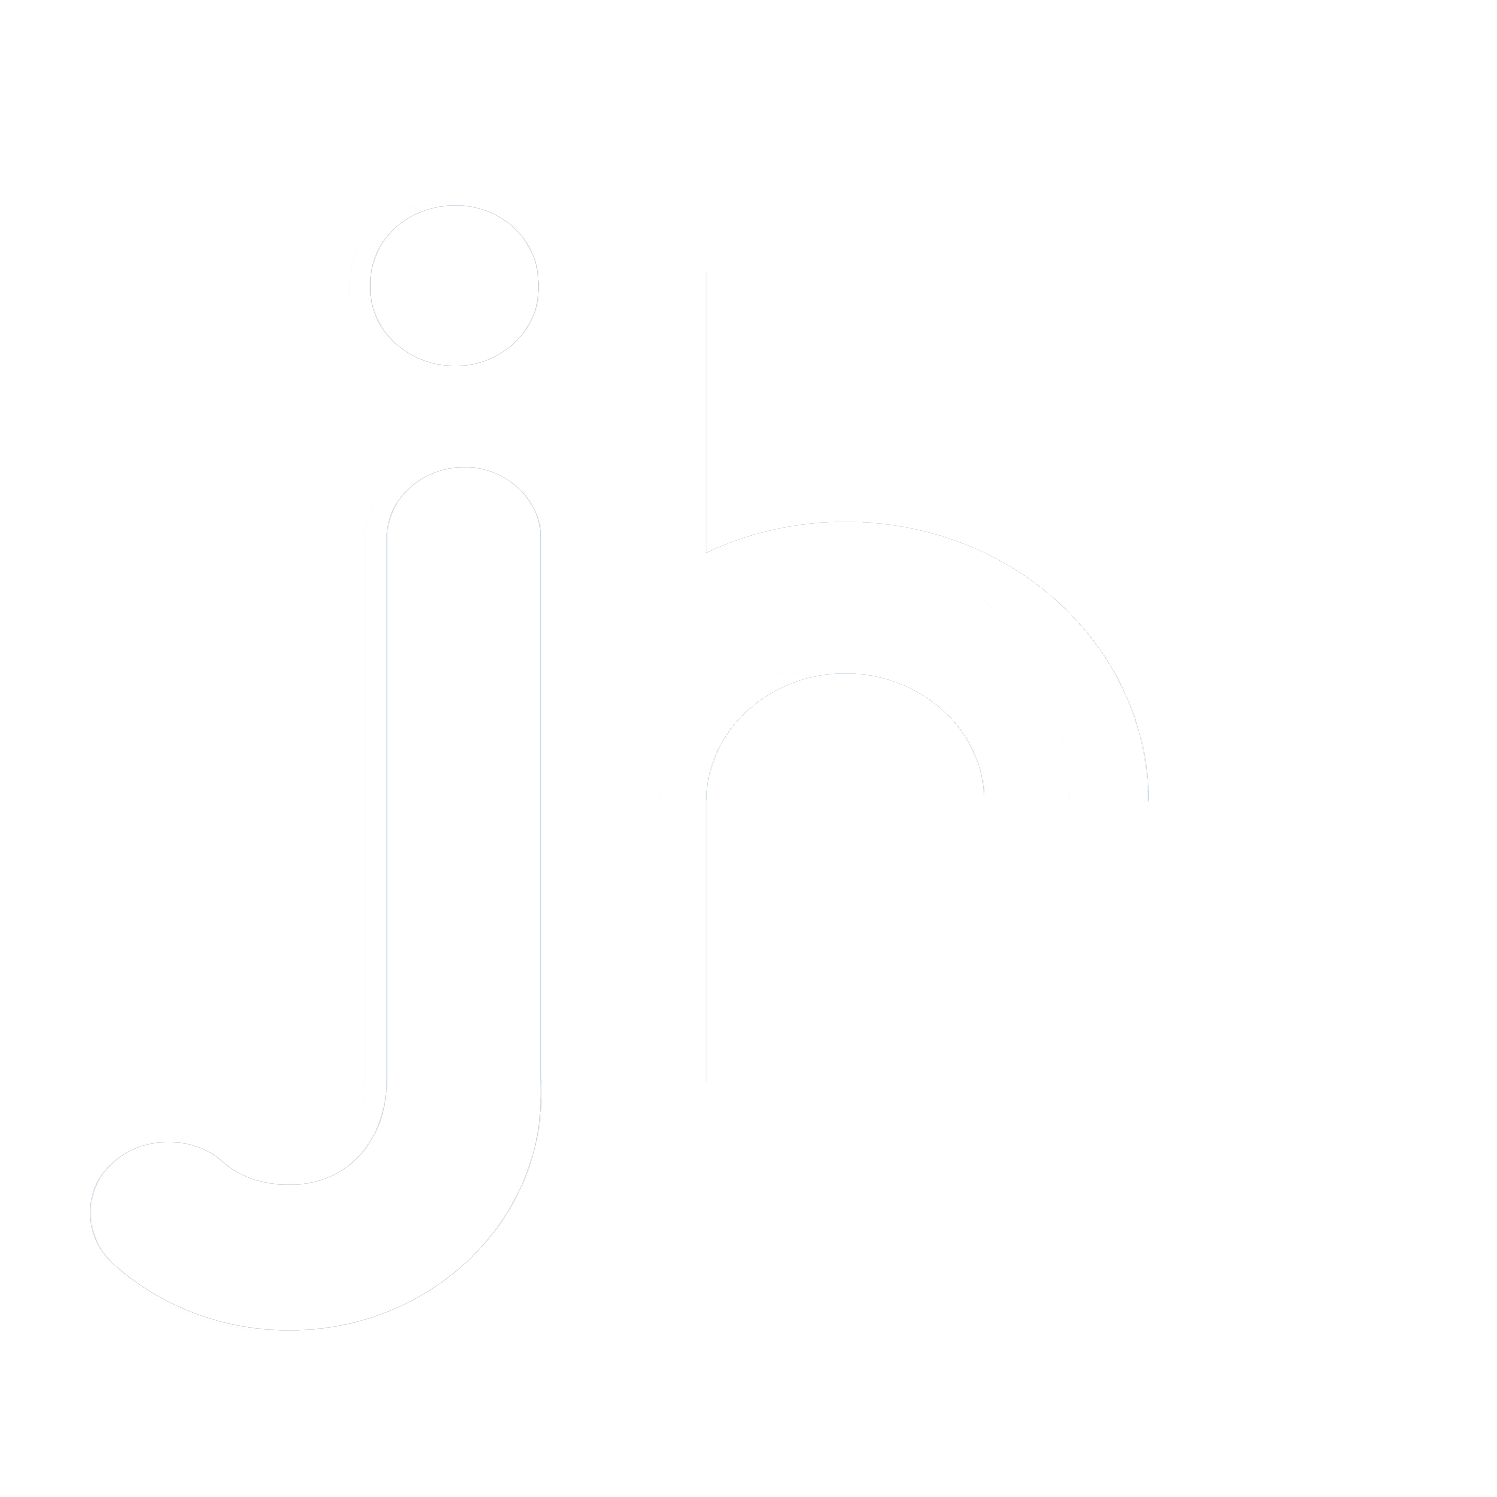 jhv2-e1593541895179.png